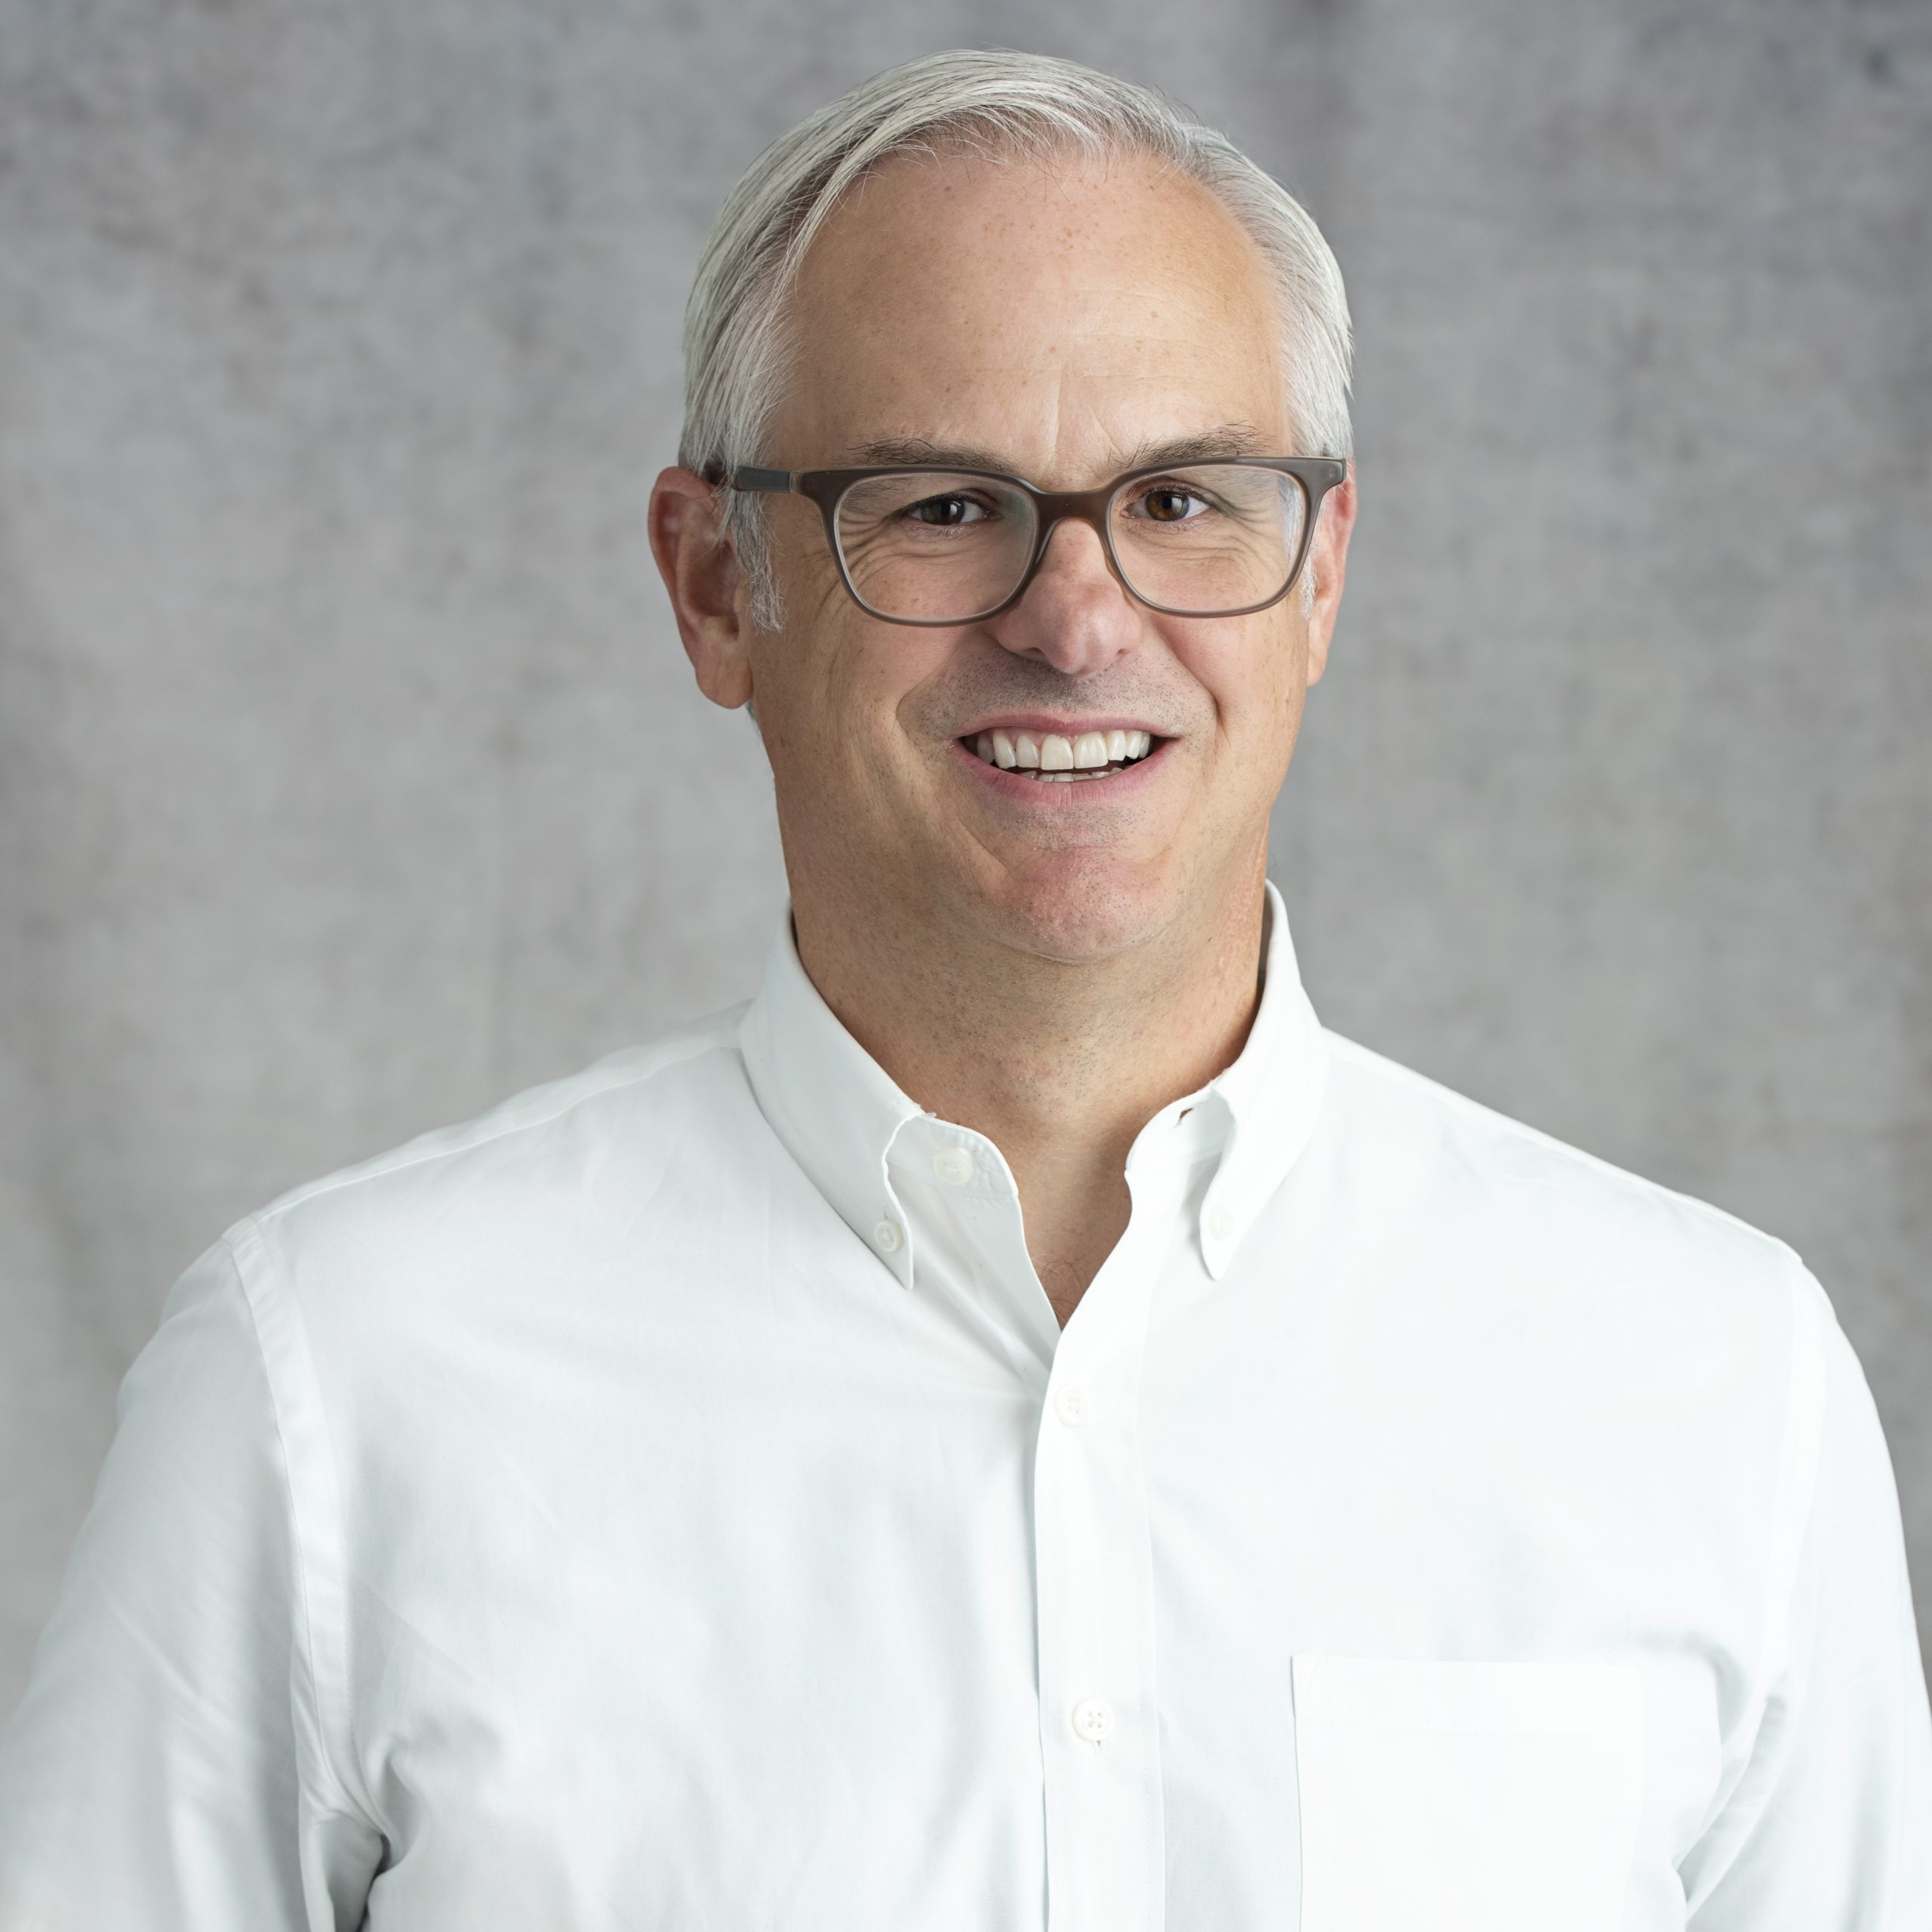 Jeff Wood  Sales Consultant, at K2 Capital